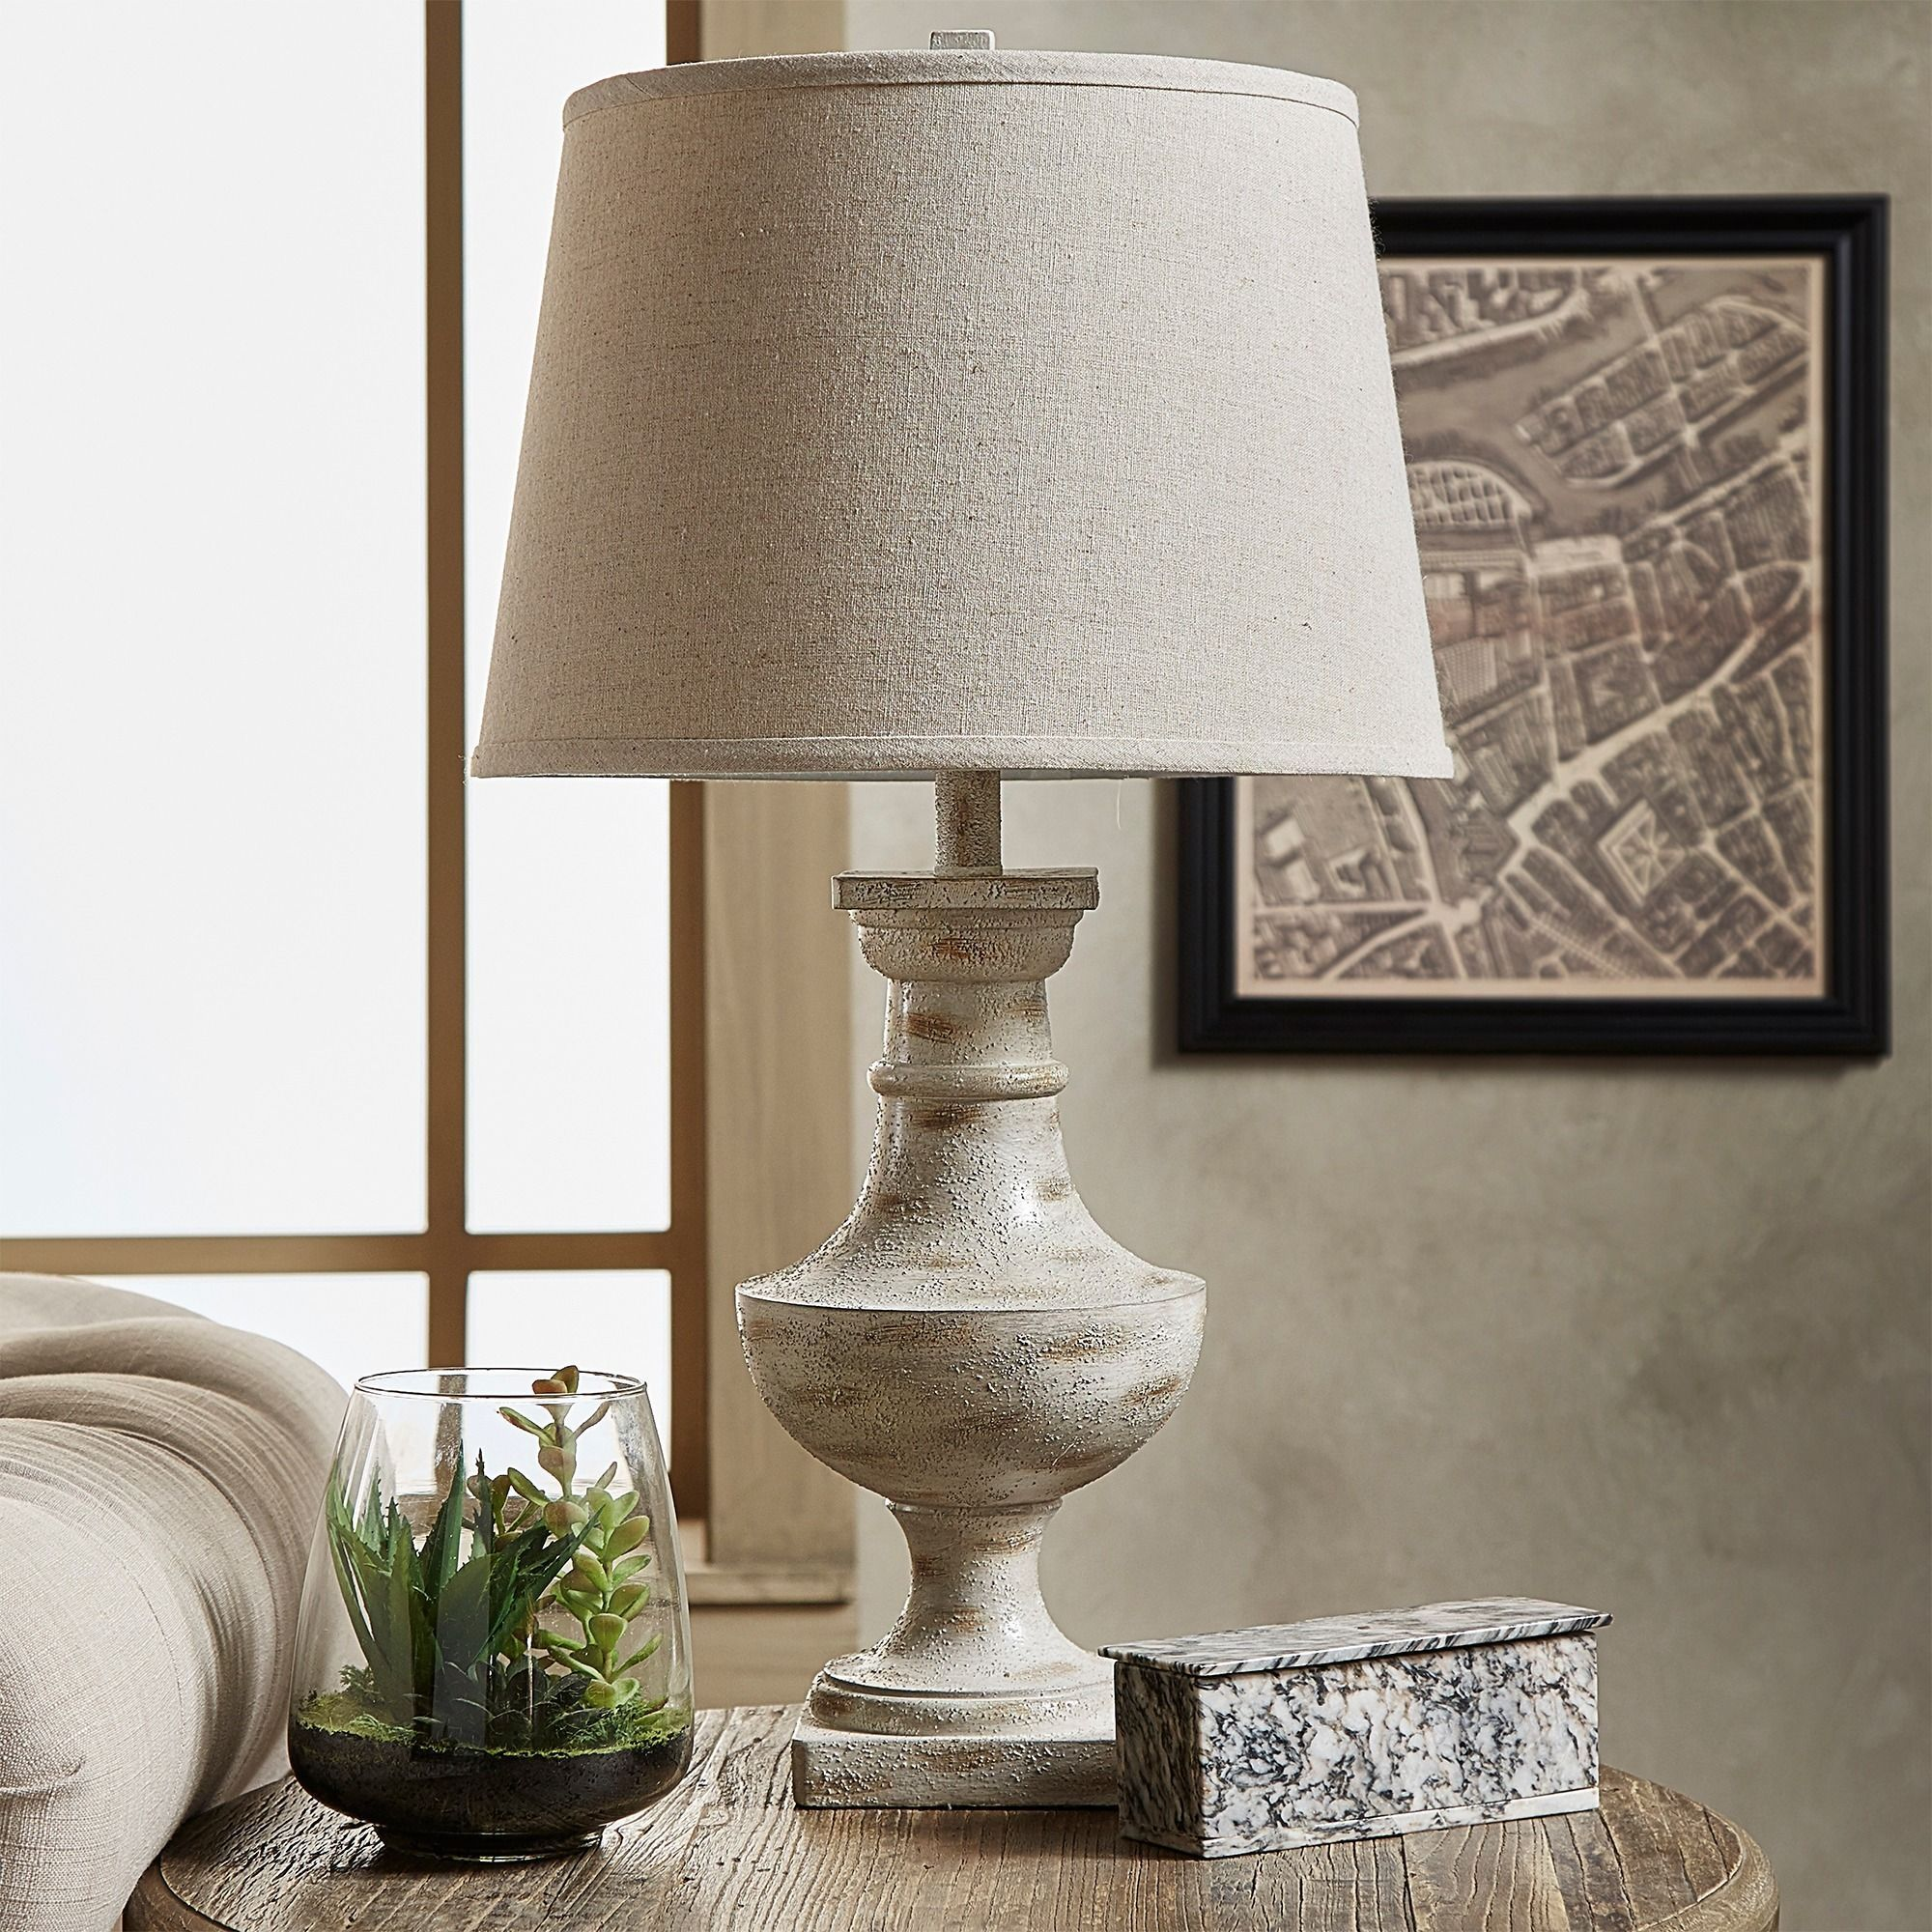 Rustic,(,190) Table Lamps: Brighten Your Home With